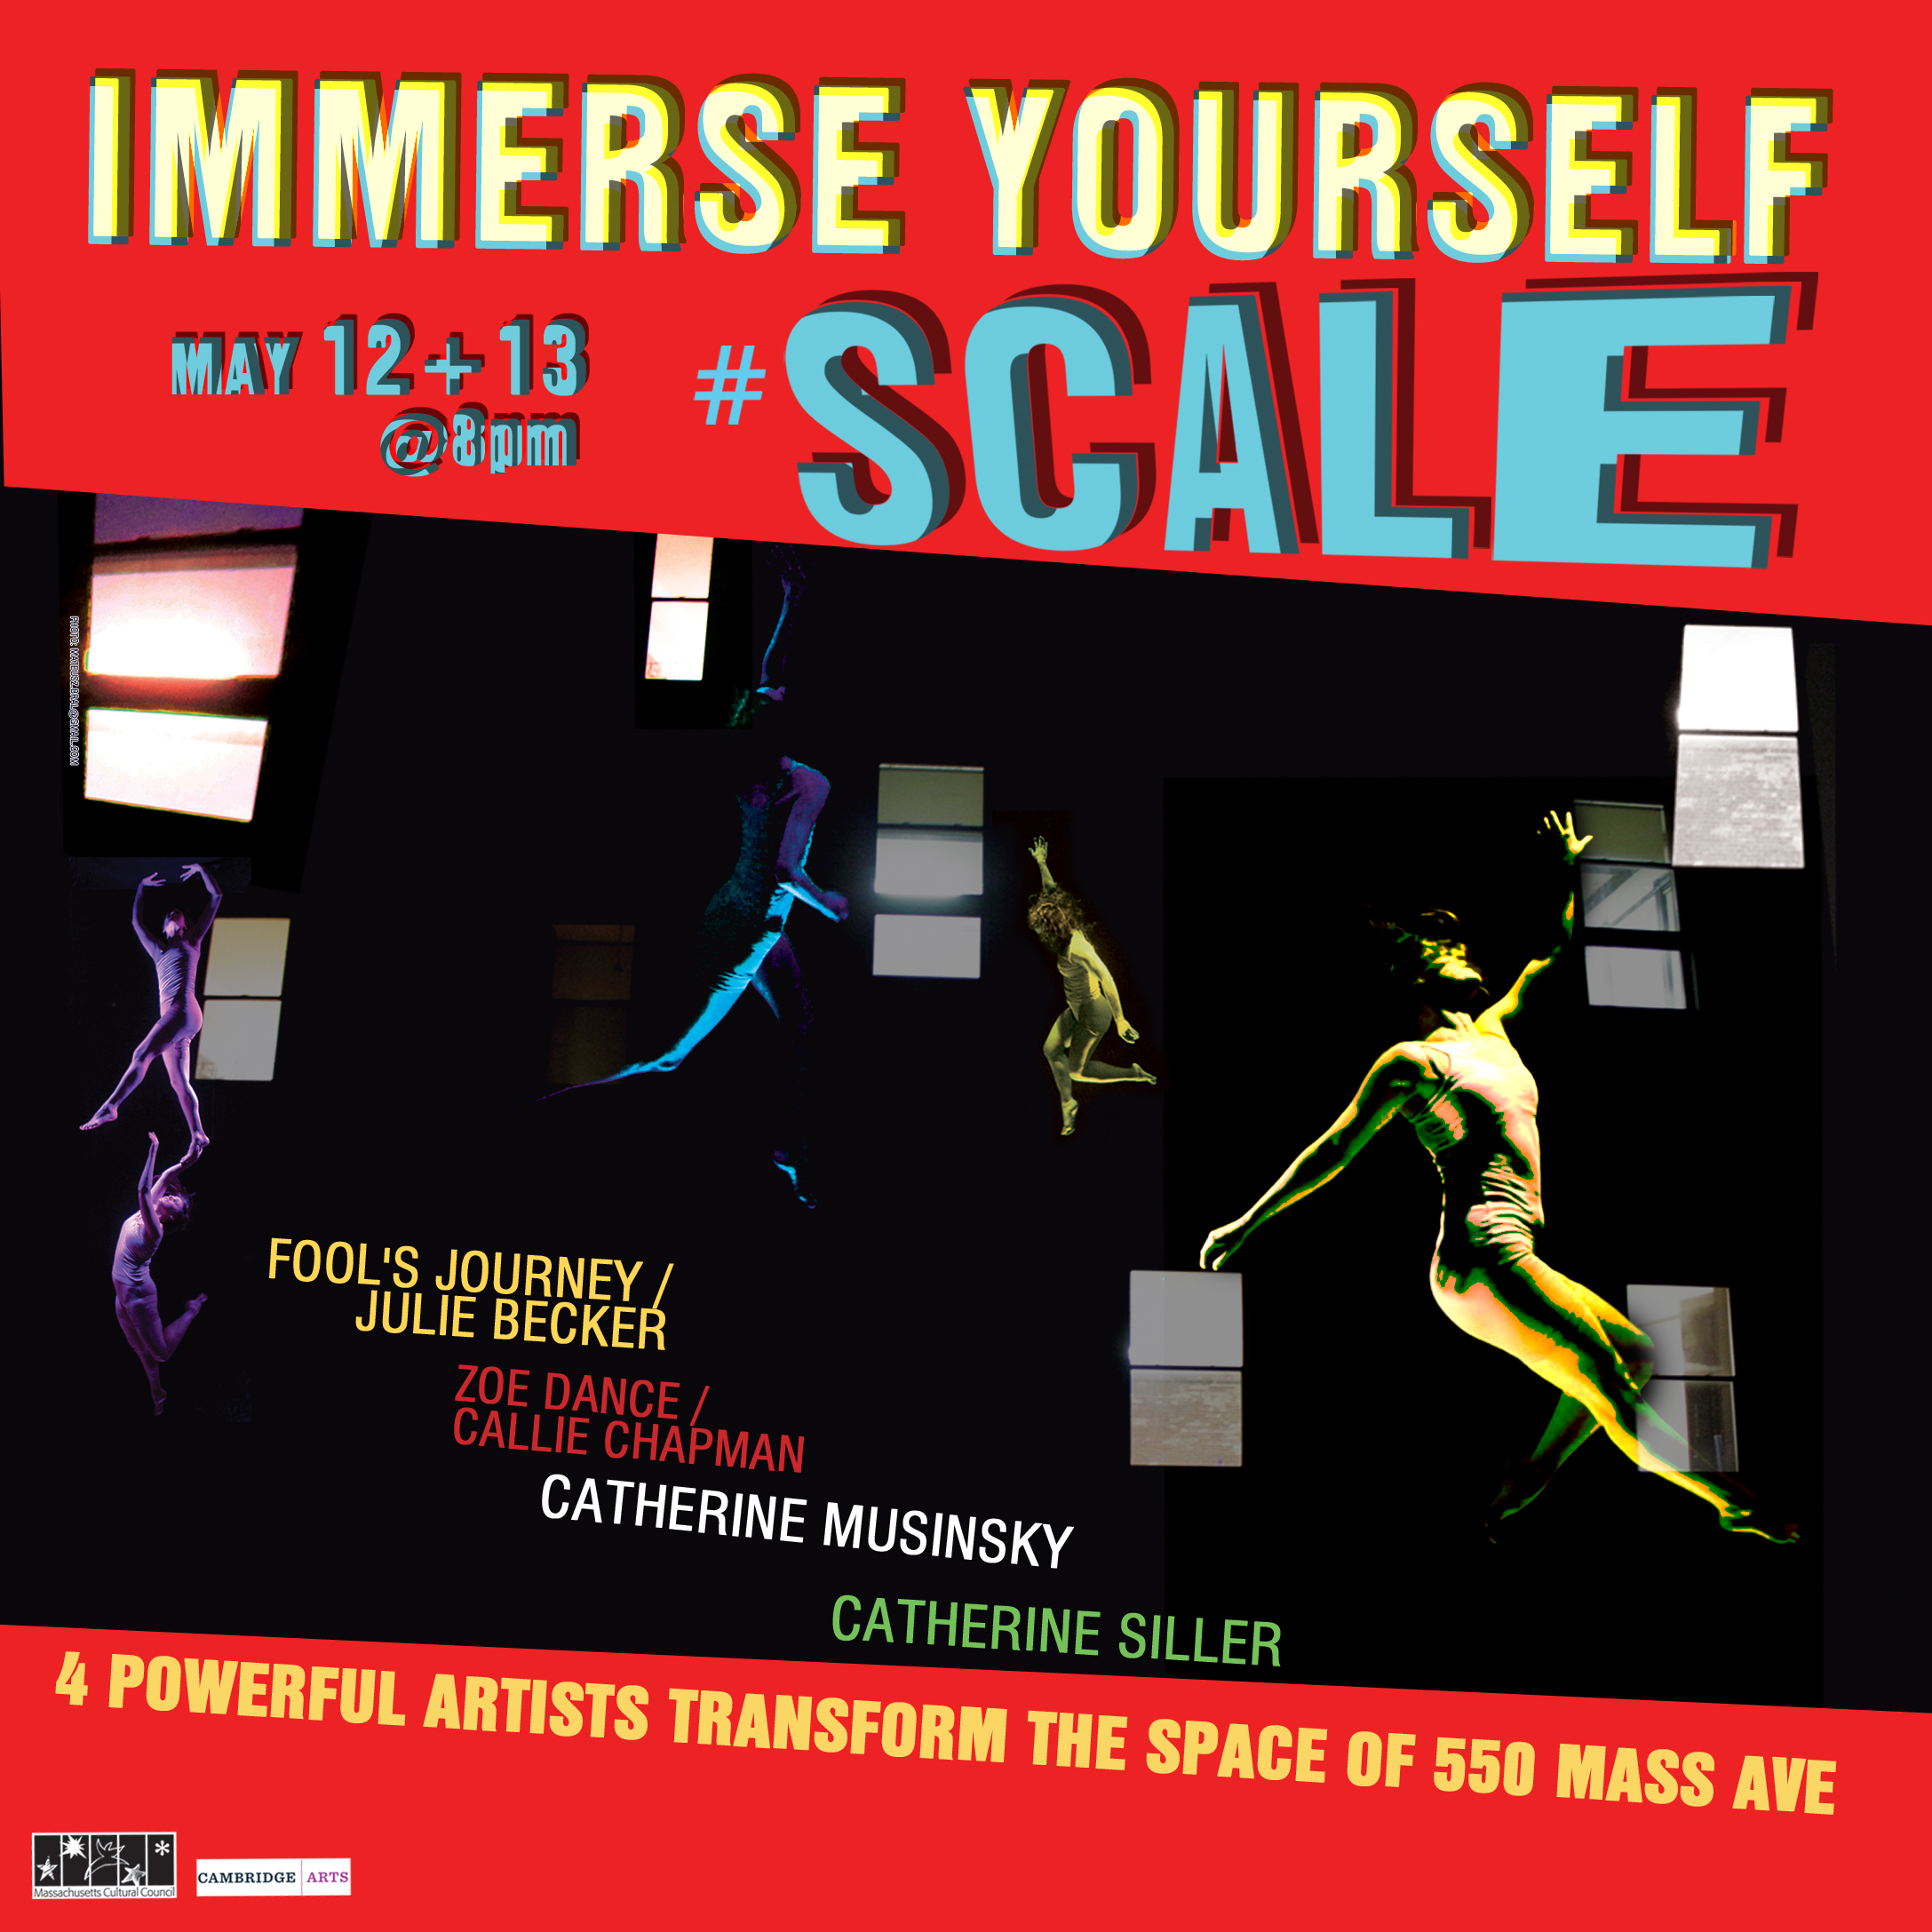 SCALE an immersive experience SATURDAY 5/13